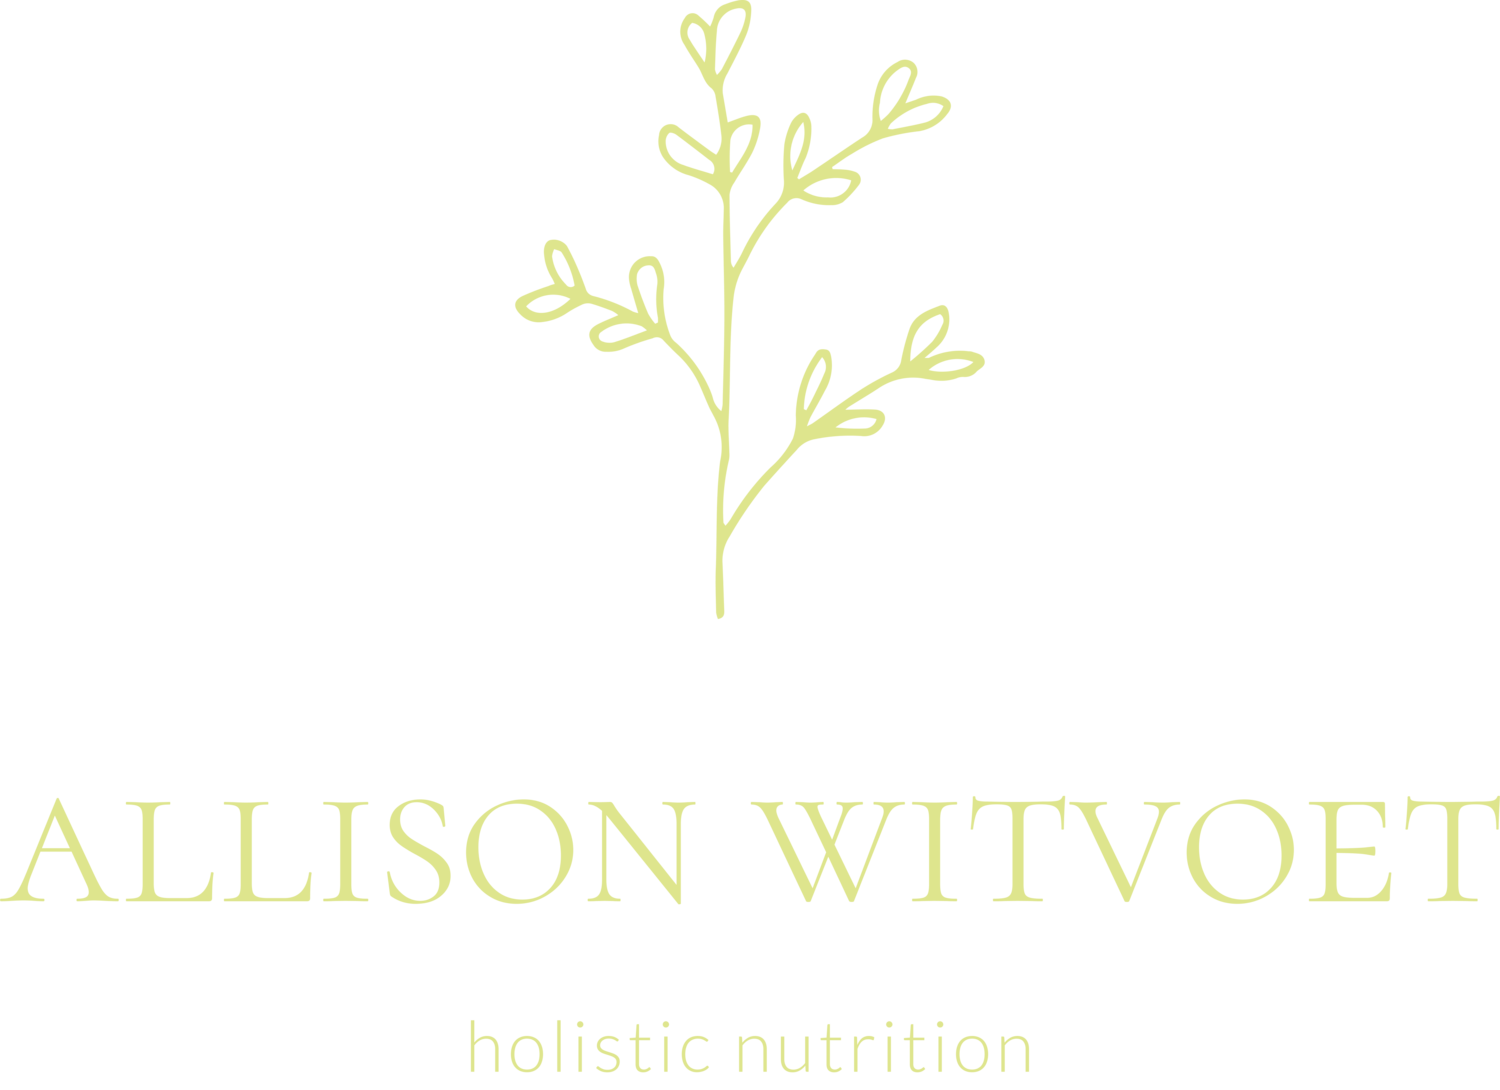 Allison Witvoet, Holistic Nutrition